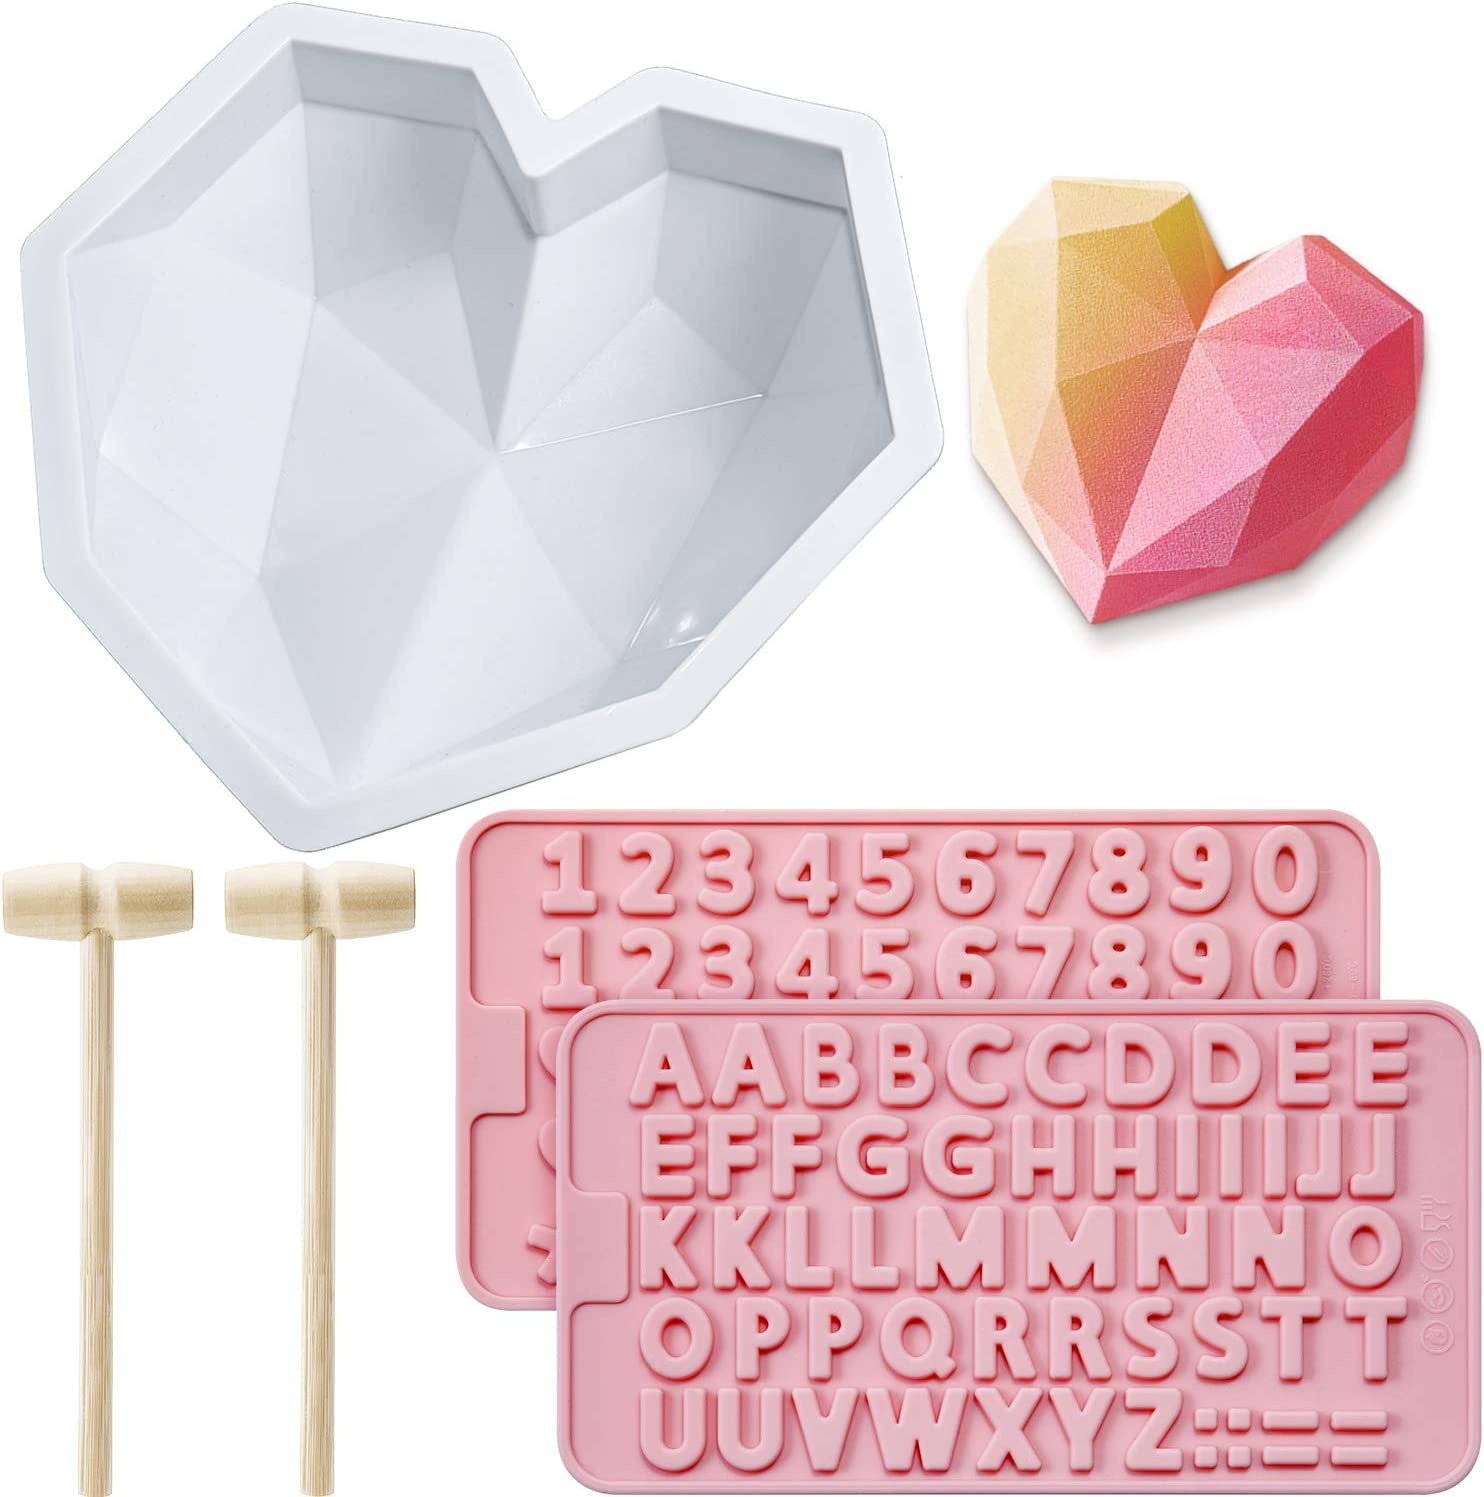 Diamond Heart Mousse Cake Mold Trays 8.7 Inch Silicone Baking Pan Oven Safe Not Sticky Mould, Wooden Hammers Mallet Pounding Toy and Chocolate Molds for Valentine Candy Chocolate Making (Pink)